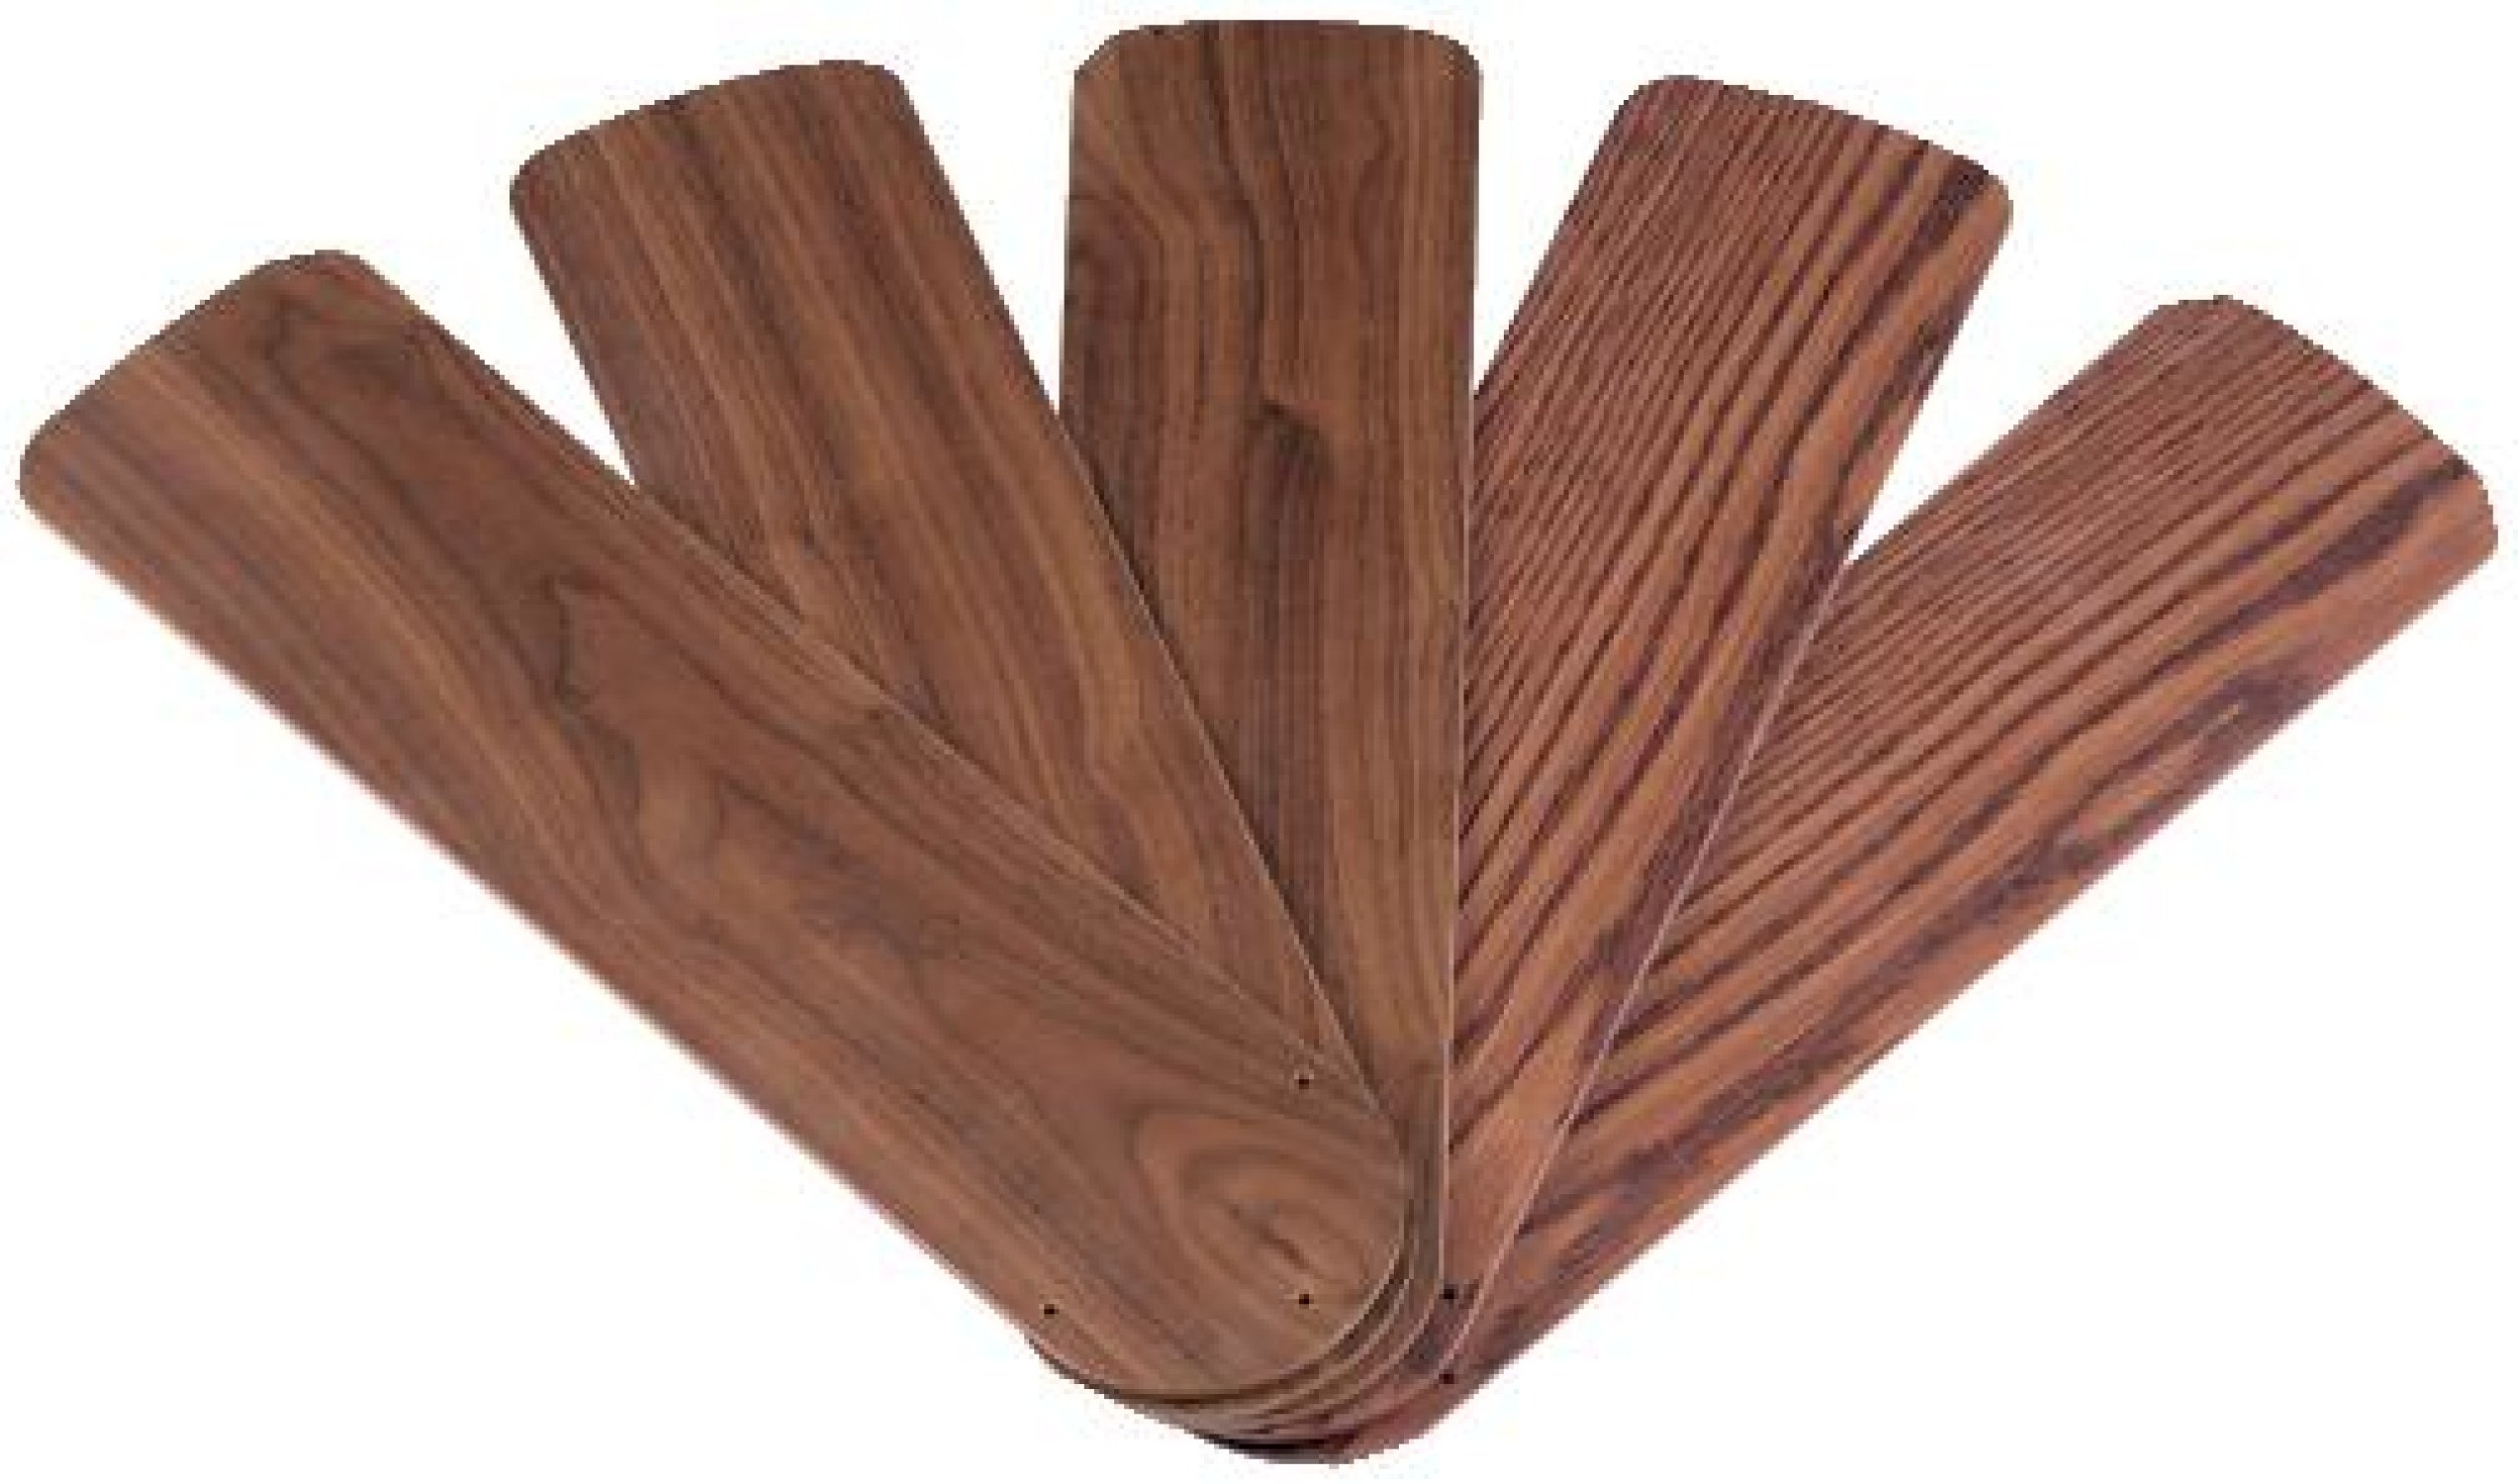 Wellington 7741000 42-Inch Oak/Walnut Replacement Fan Blades, Five-Pack by Westinghouse (Image #1)